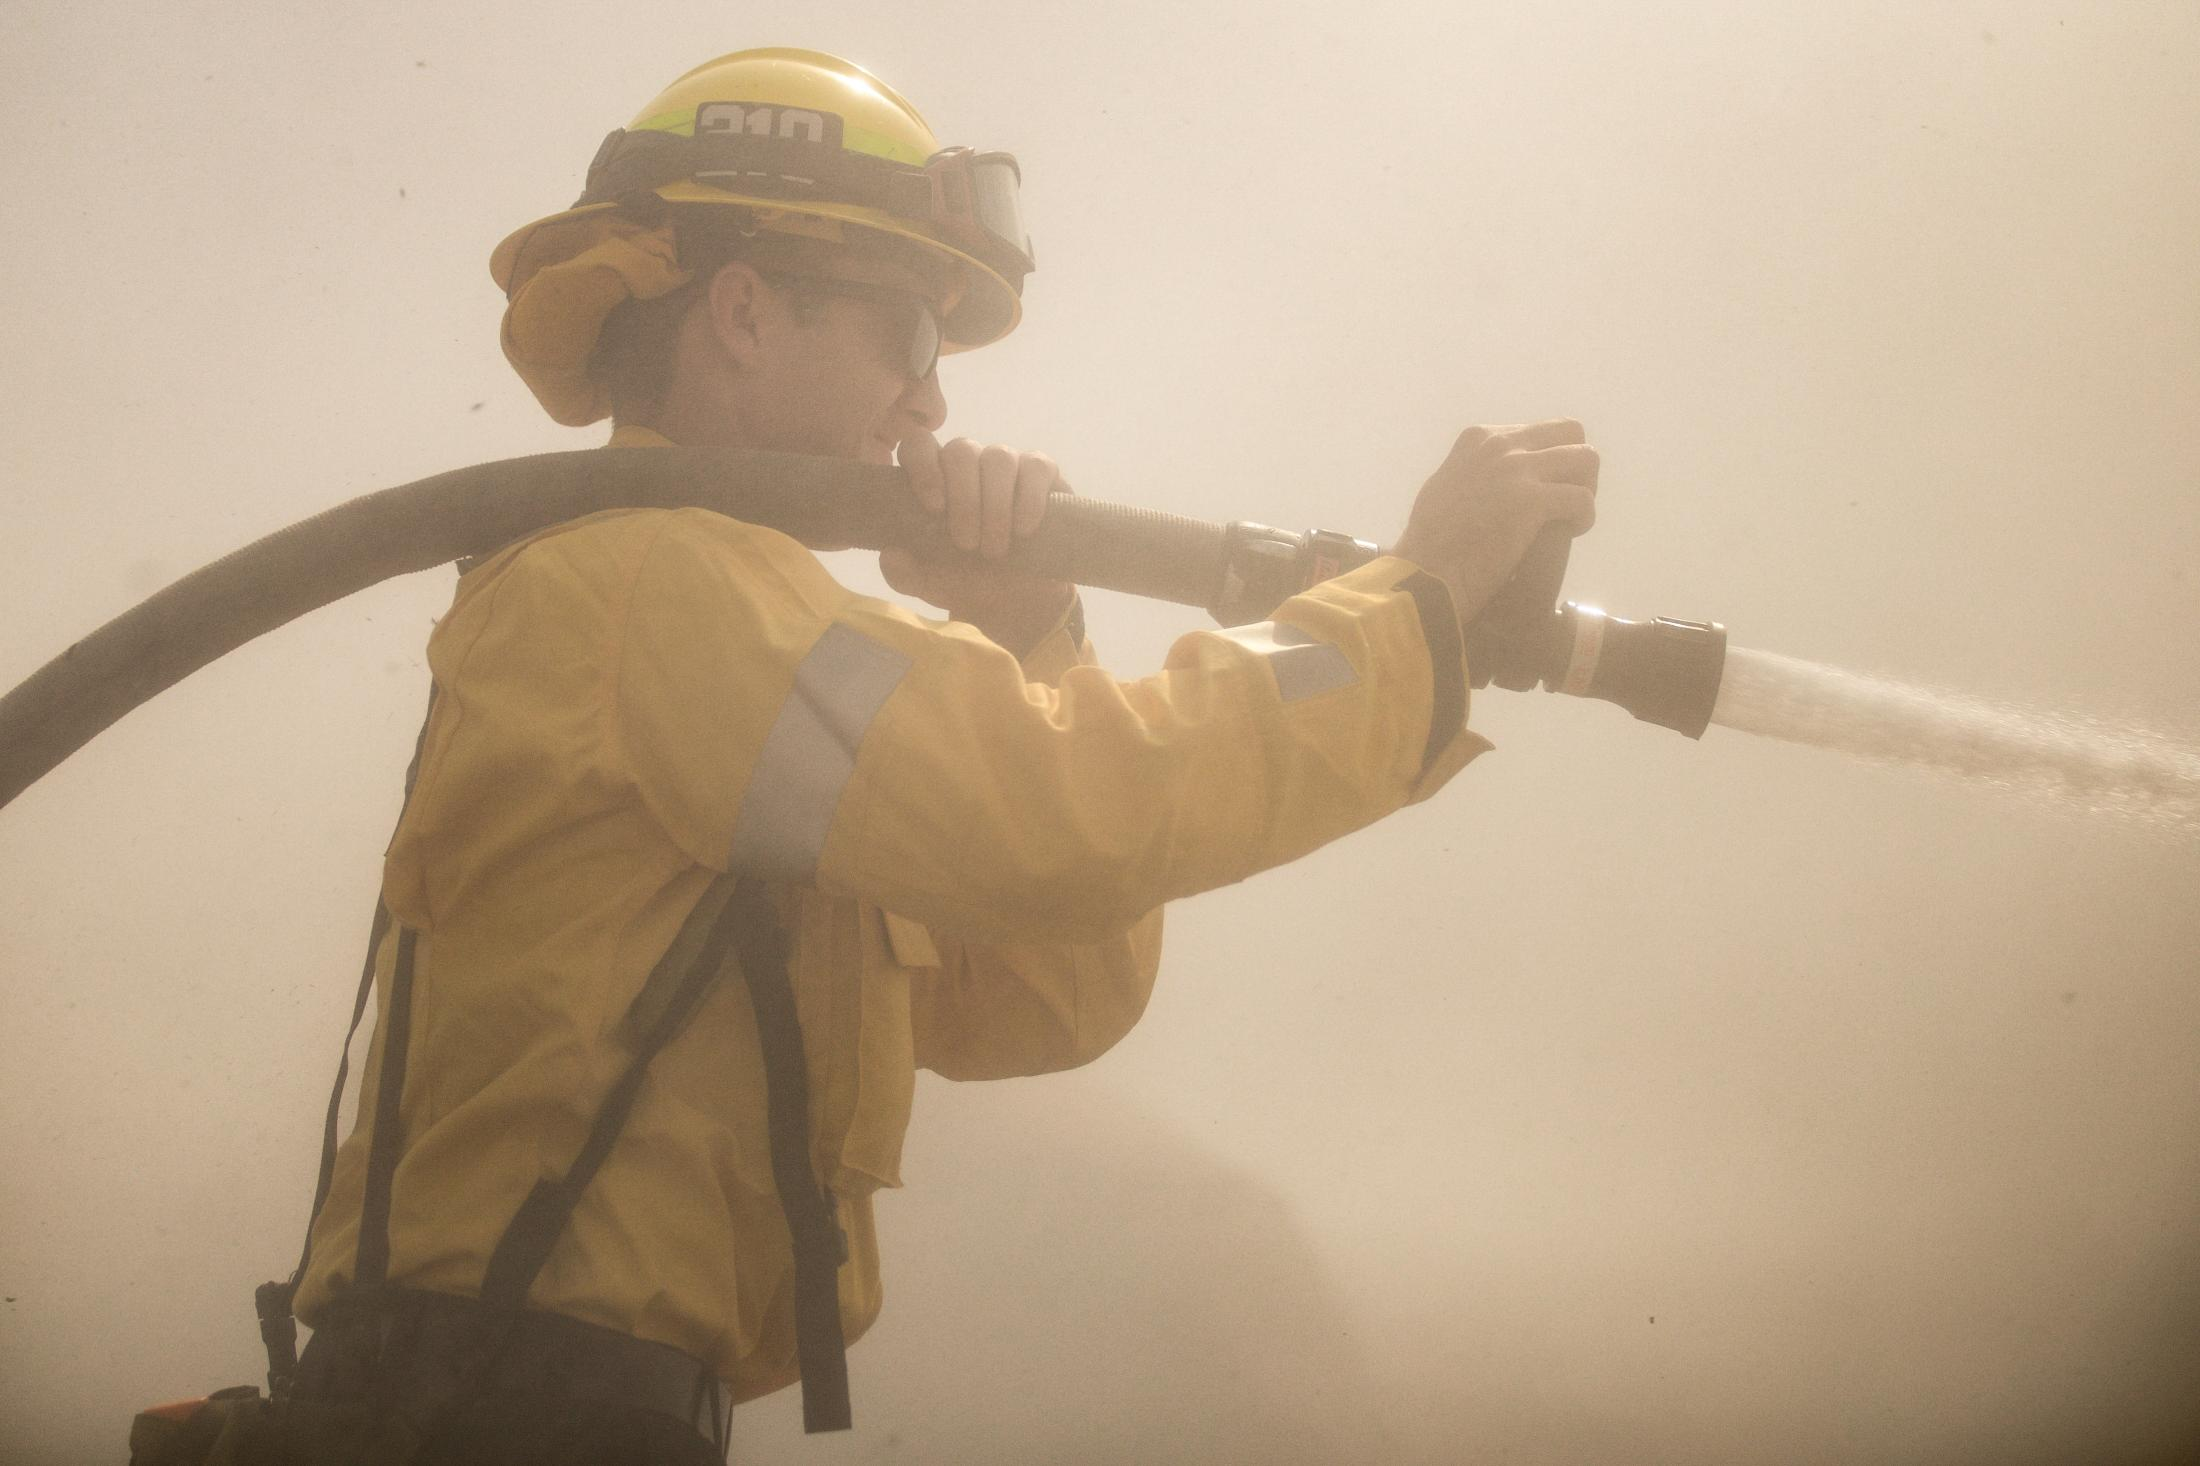 The state of California faced its worst fire season in history. One of the worst fires located in Los Angeles and Ventura County, named the Woolsey Fire. This wildfire burned; 96,949 acres and destroyed 1,643 structures. Three people reported to have died in the blaze, and over a quarter-million evacuated. A water cannon is sprayed at a hotspot in the effort to contain a hazardous fire area.